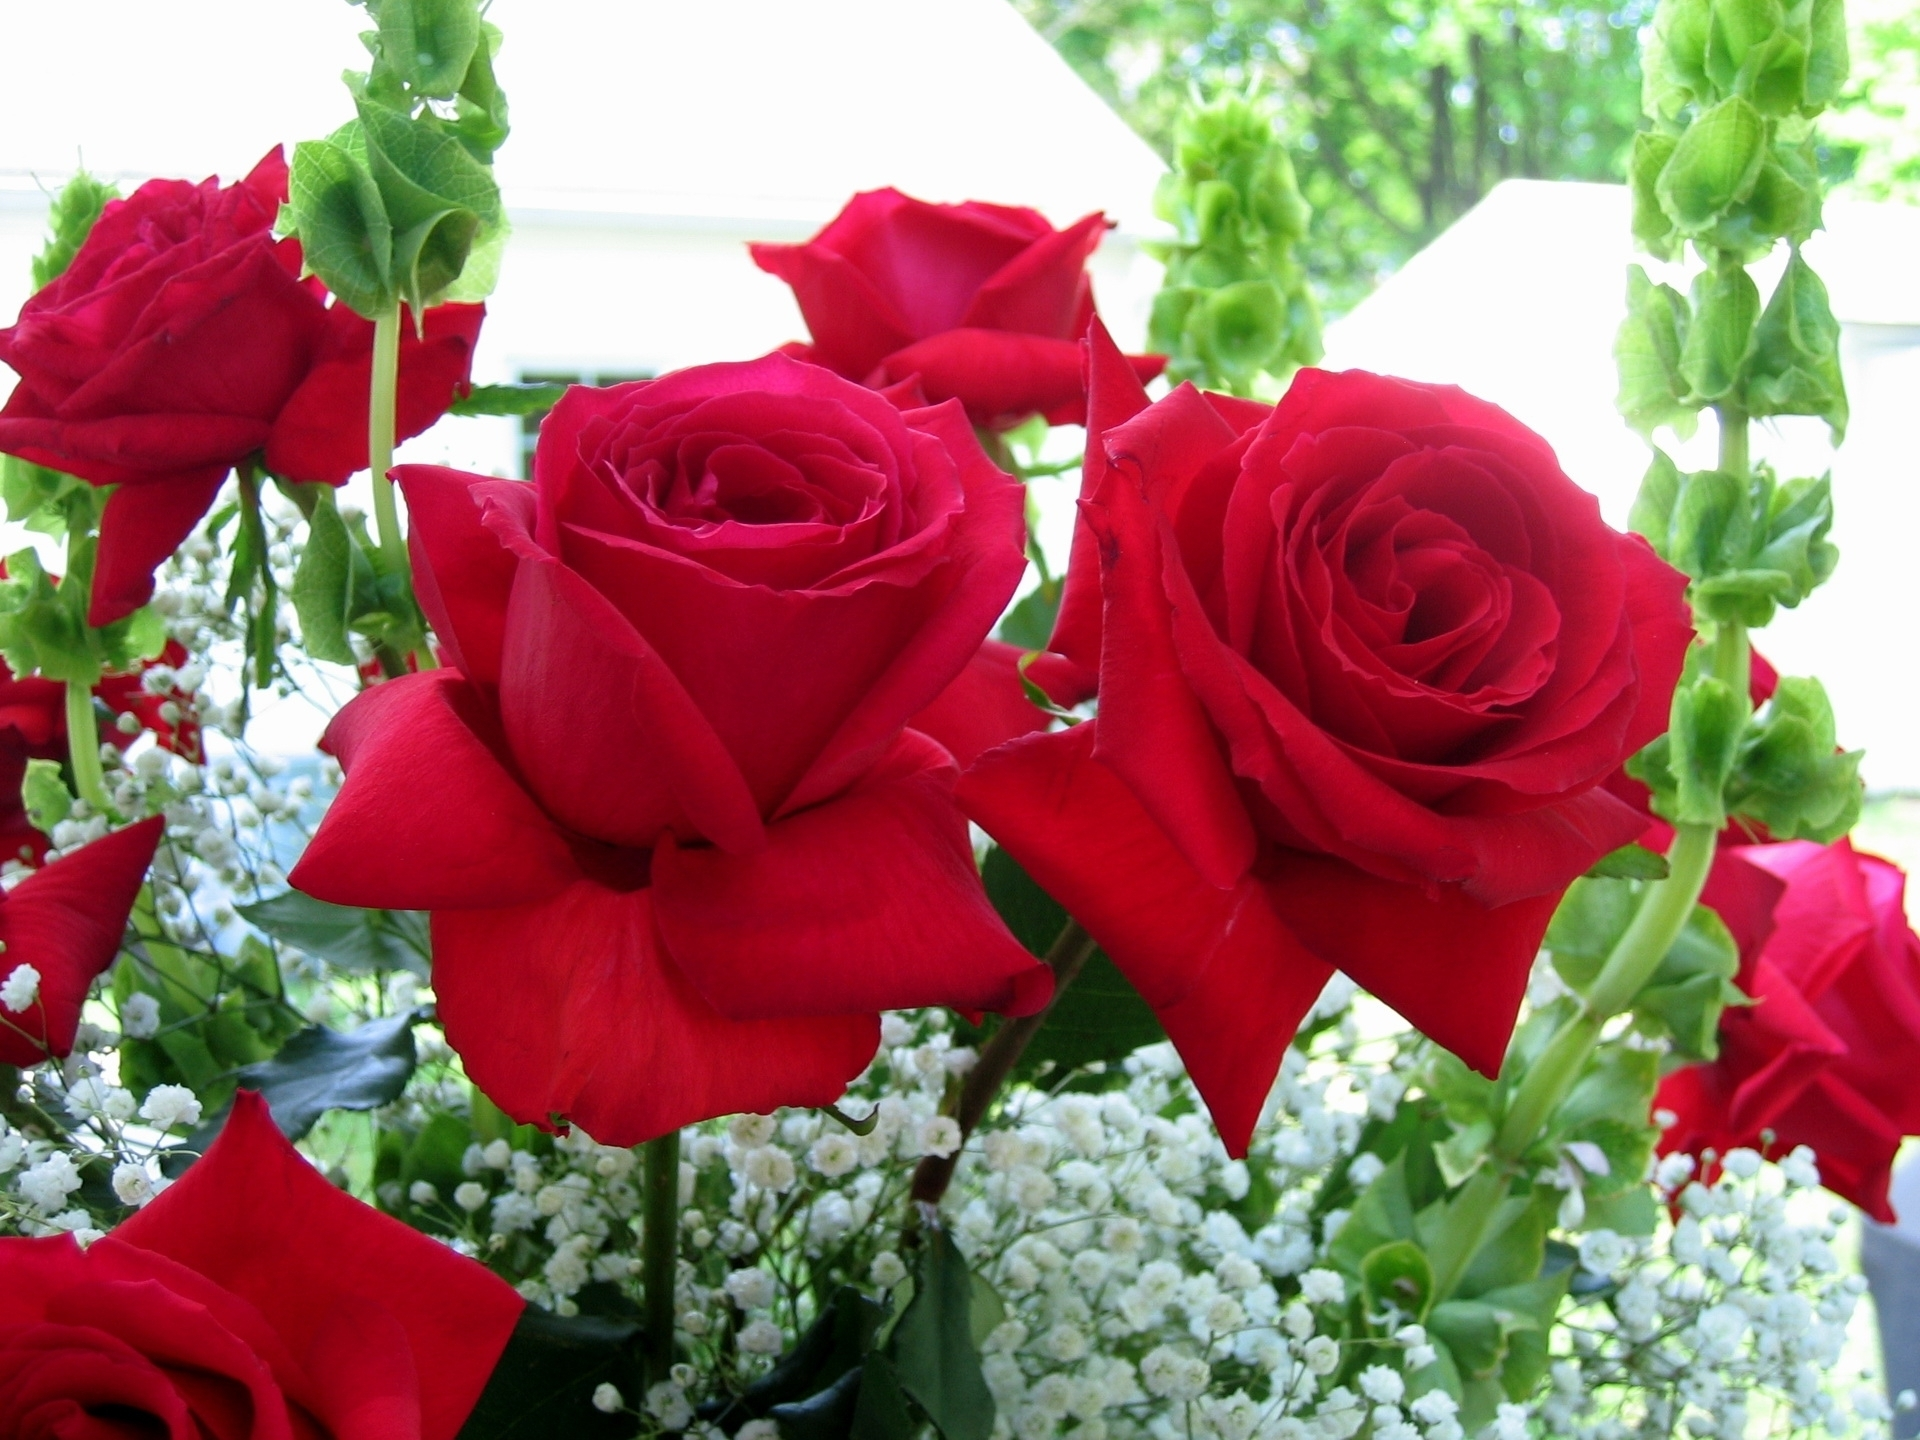 wallpaper desktop backgrounds and roses hd of laptop photos for